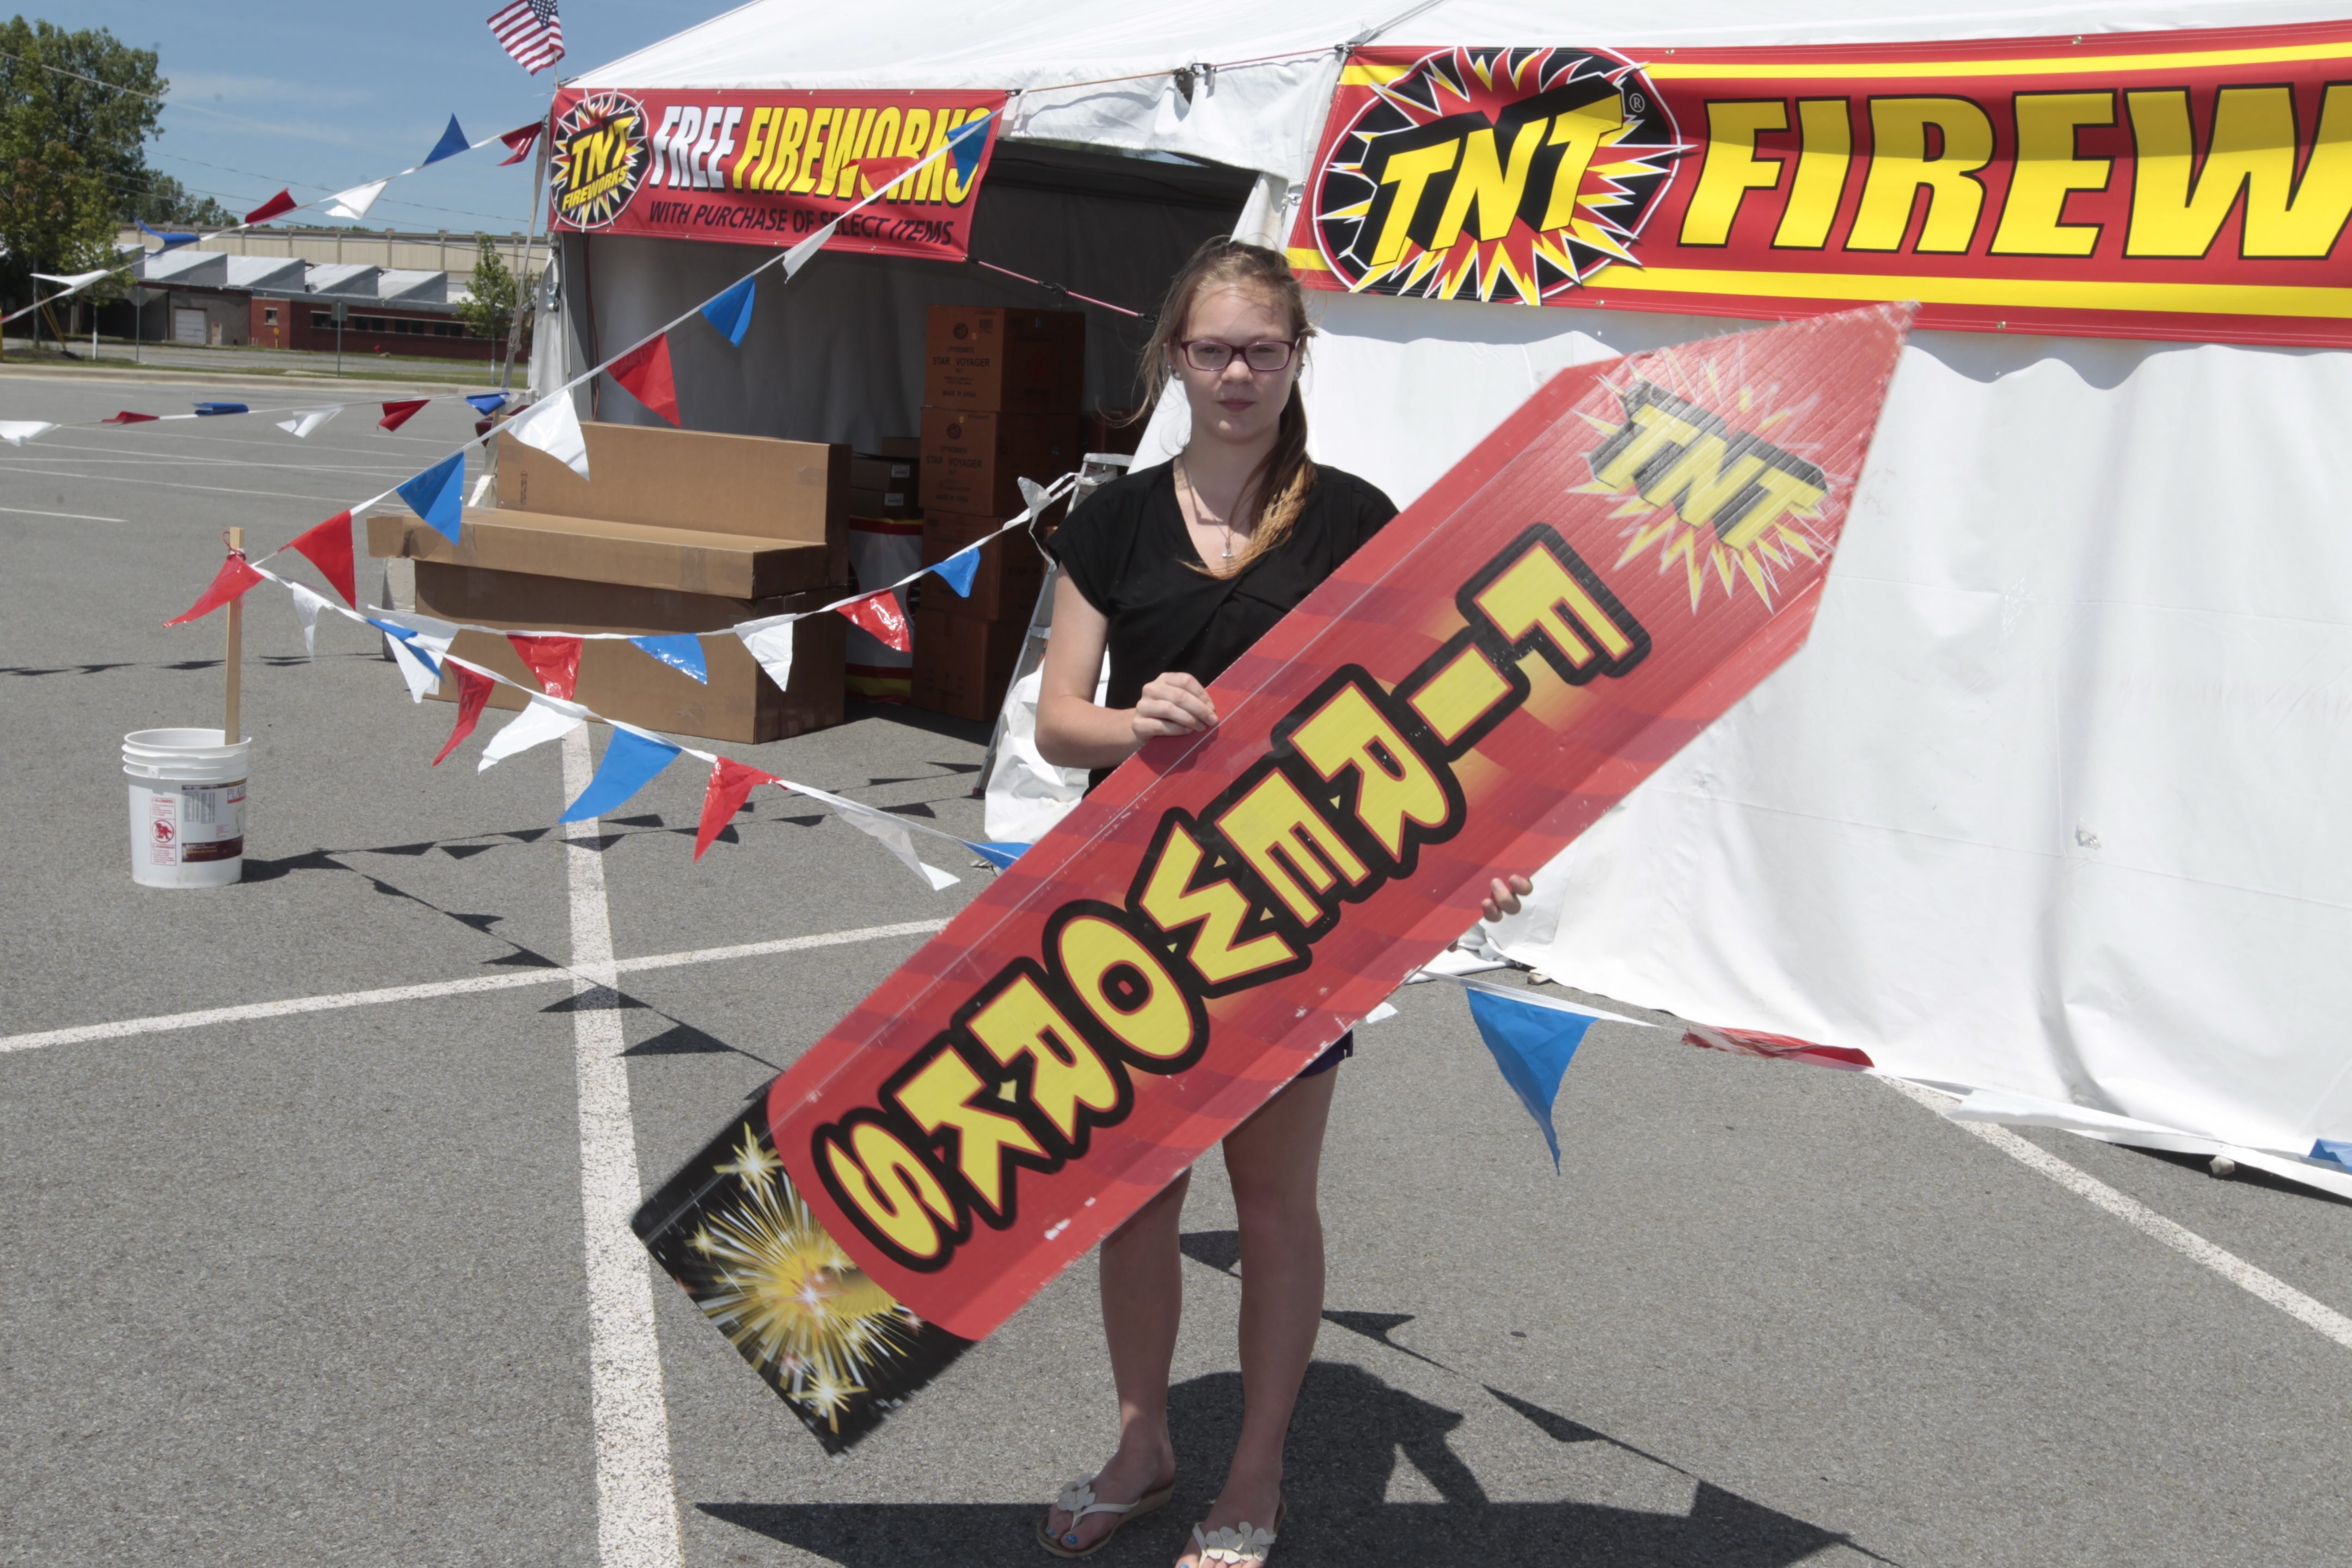 JoAnna Handler moves a sign as she helps set up a tent to sell sparklers and fireworks in the Walmart parking lot in North Tonawanda.